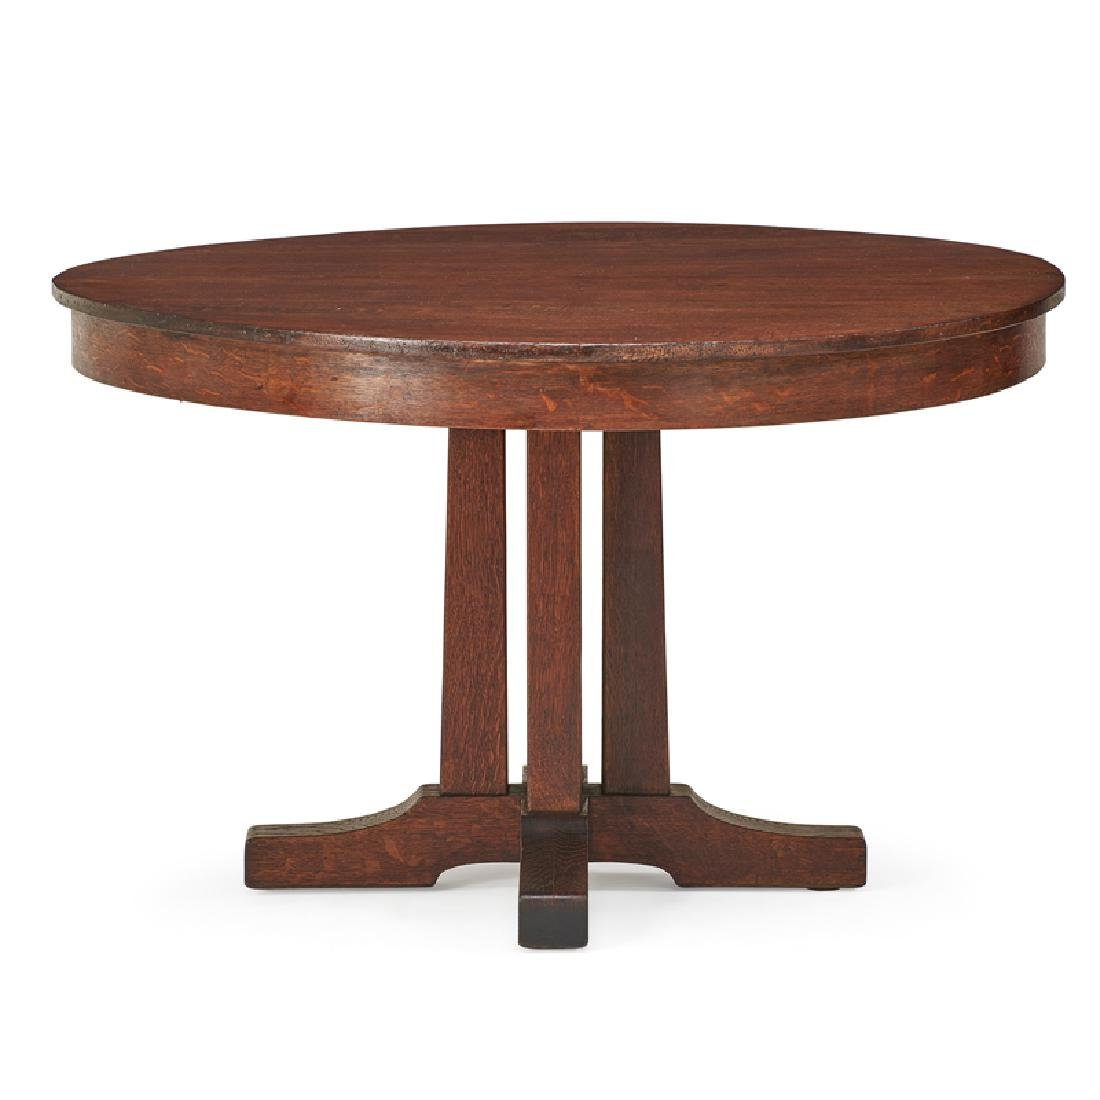 "L. & J.G. STICKLEY ""Prairie"" dining table"